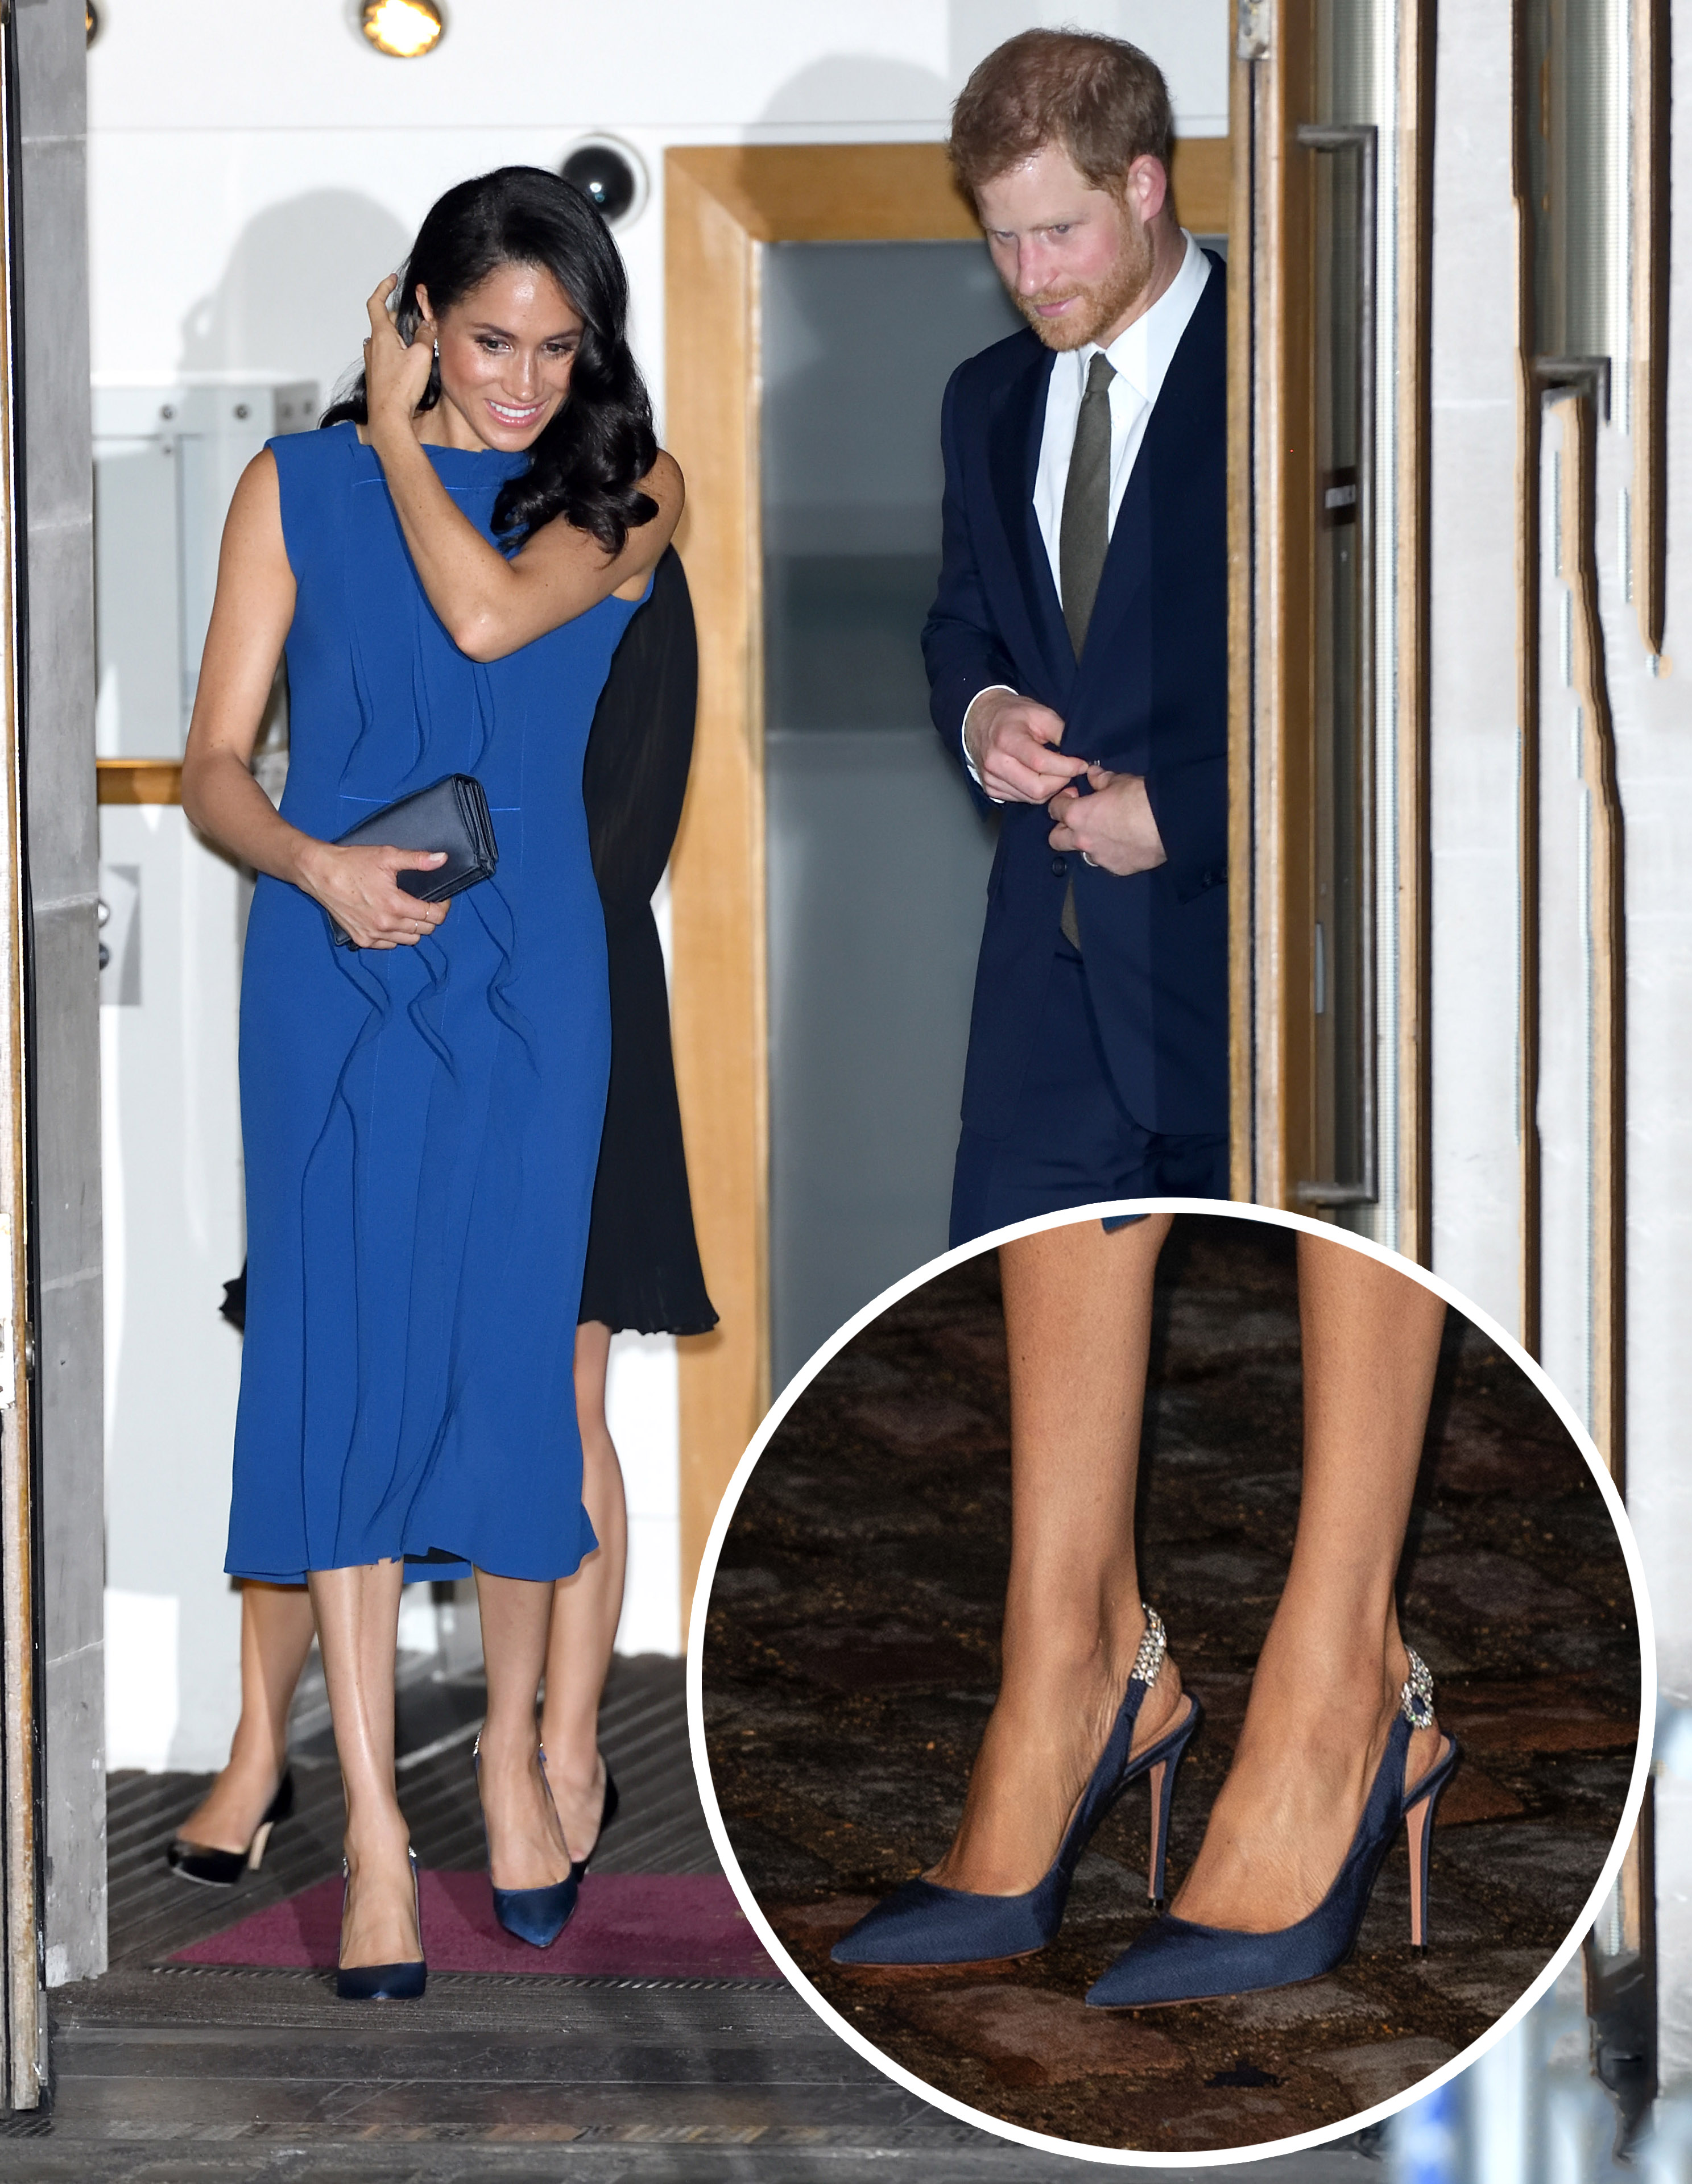 "<p>When <a href=""https://style.nine.com.au/2018/09/06/15/22/style-fashion-vanity-fair-best-dressed-list-meghan-markle"" target=""_blank"" title=""Meghan Markle"" draggable=""false"">Meghan Markle</a> arrived on the Royal scene, thanks to her budding romance with Prince Harry in 2016, it was her cool aesthetic and effortless <a href=""https://style.nine.com.au/2018/09/05/13/20/style-fashion-royals-princess-diana-meghan-markle"" target=""_blank"" title=""approach to fashion"" draggable=""false"">approach to fashion</a> that set tongues wagging amongst the style set.<br /> <br /> Now, since her new role as the Duchess of Sussex, Markle has proved that an official title hasn't changed her modern take on <a href=""https://style.nine.com.au/2018/08/13/11/40/style-fashion-royals-meghan-markle-belts"" target=""_blank"" title=""royal dressing"" draggable=""false"">royal dressing</a>.</p> <p>With a very dapper Prince Harry by her side, Markle stepped out overnight for the 100 Days to Peace gala, marking the centenary of the end of the First World War.</p> <p>Markle lifted the style stakes yet again, arriving in a royal blue sleeveless midi dress by Jason Wu. This time however, it was the 37 year-old's accessories that were the real show-stoppers. </p> <p>The <em>Suits</em> star paired the frock with stunning blue satin pointed-slingbacks with jewel embellishments that look like something from the pages of a bridal magazine. The swoon-worthy heels are from her favourite go-to shoe designer, Aquazzura, the shoe style becoming somewhat of a signature look for Markle, rarely seen without pointed stiletto heels. The former actress complimented her look with a midnight blue clutch from Dior.<br /> <br /> Markle has honed her style to polished perfection with the help of designers such as Clare Waight Keller, Stella McCartney and Roland Mouret.<br /> <br /> Click through to see Meghan Markle's most standout looks since becoming a Duchess - all looks complete with her signature heels.</p>"